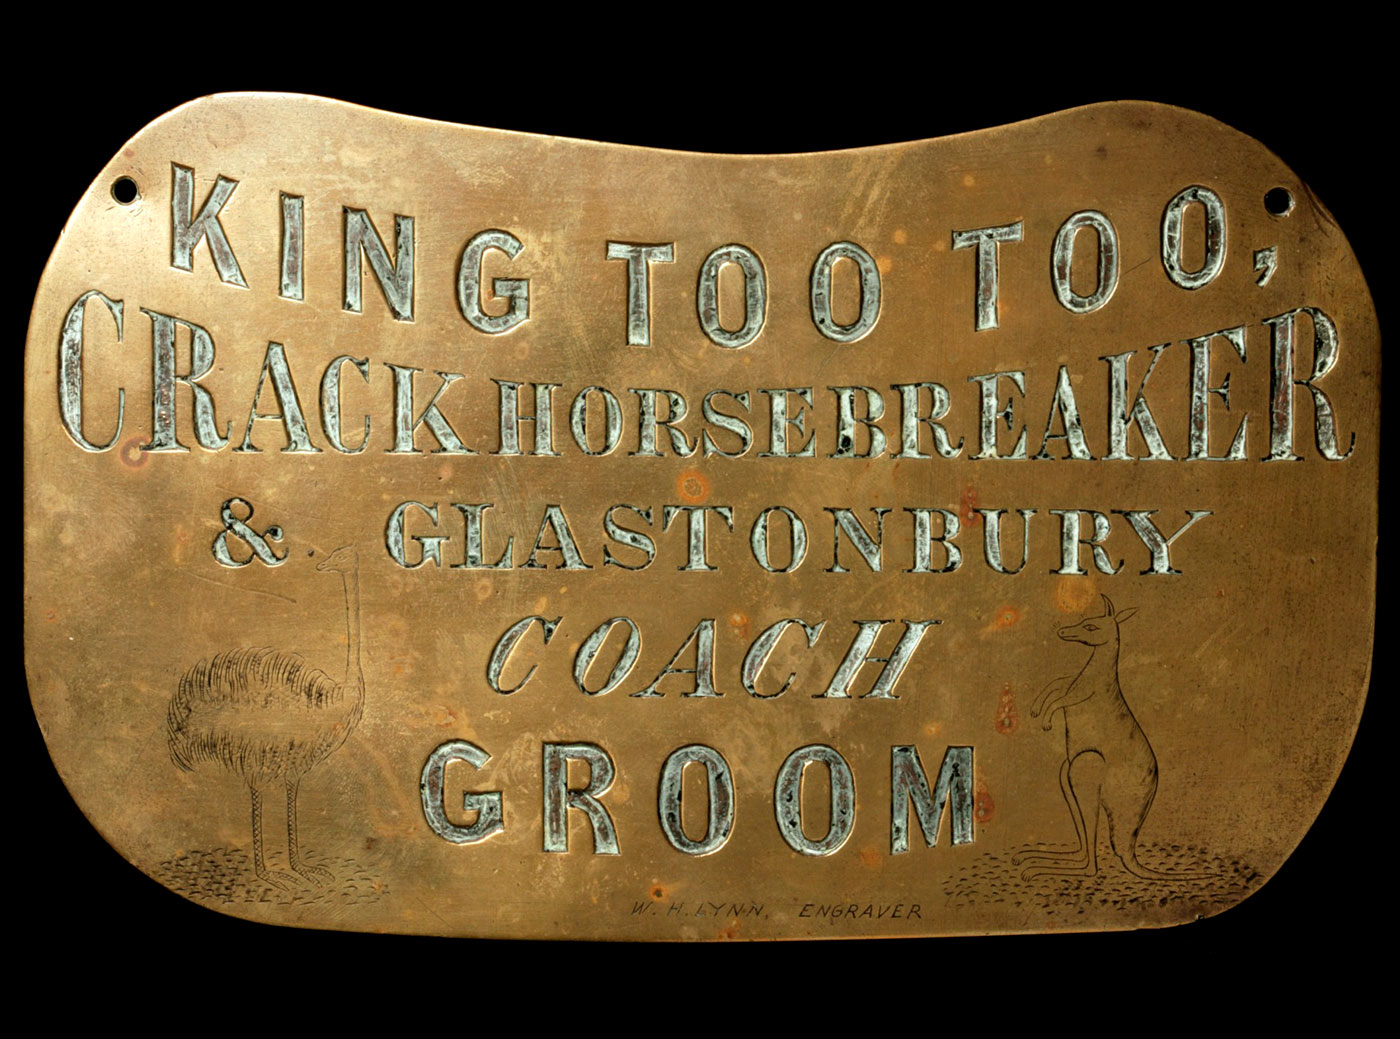 Aboriginal breastplate for King Too Too - click to view larger image